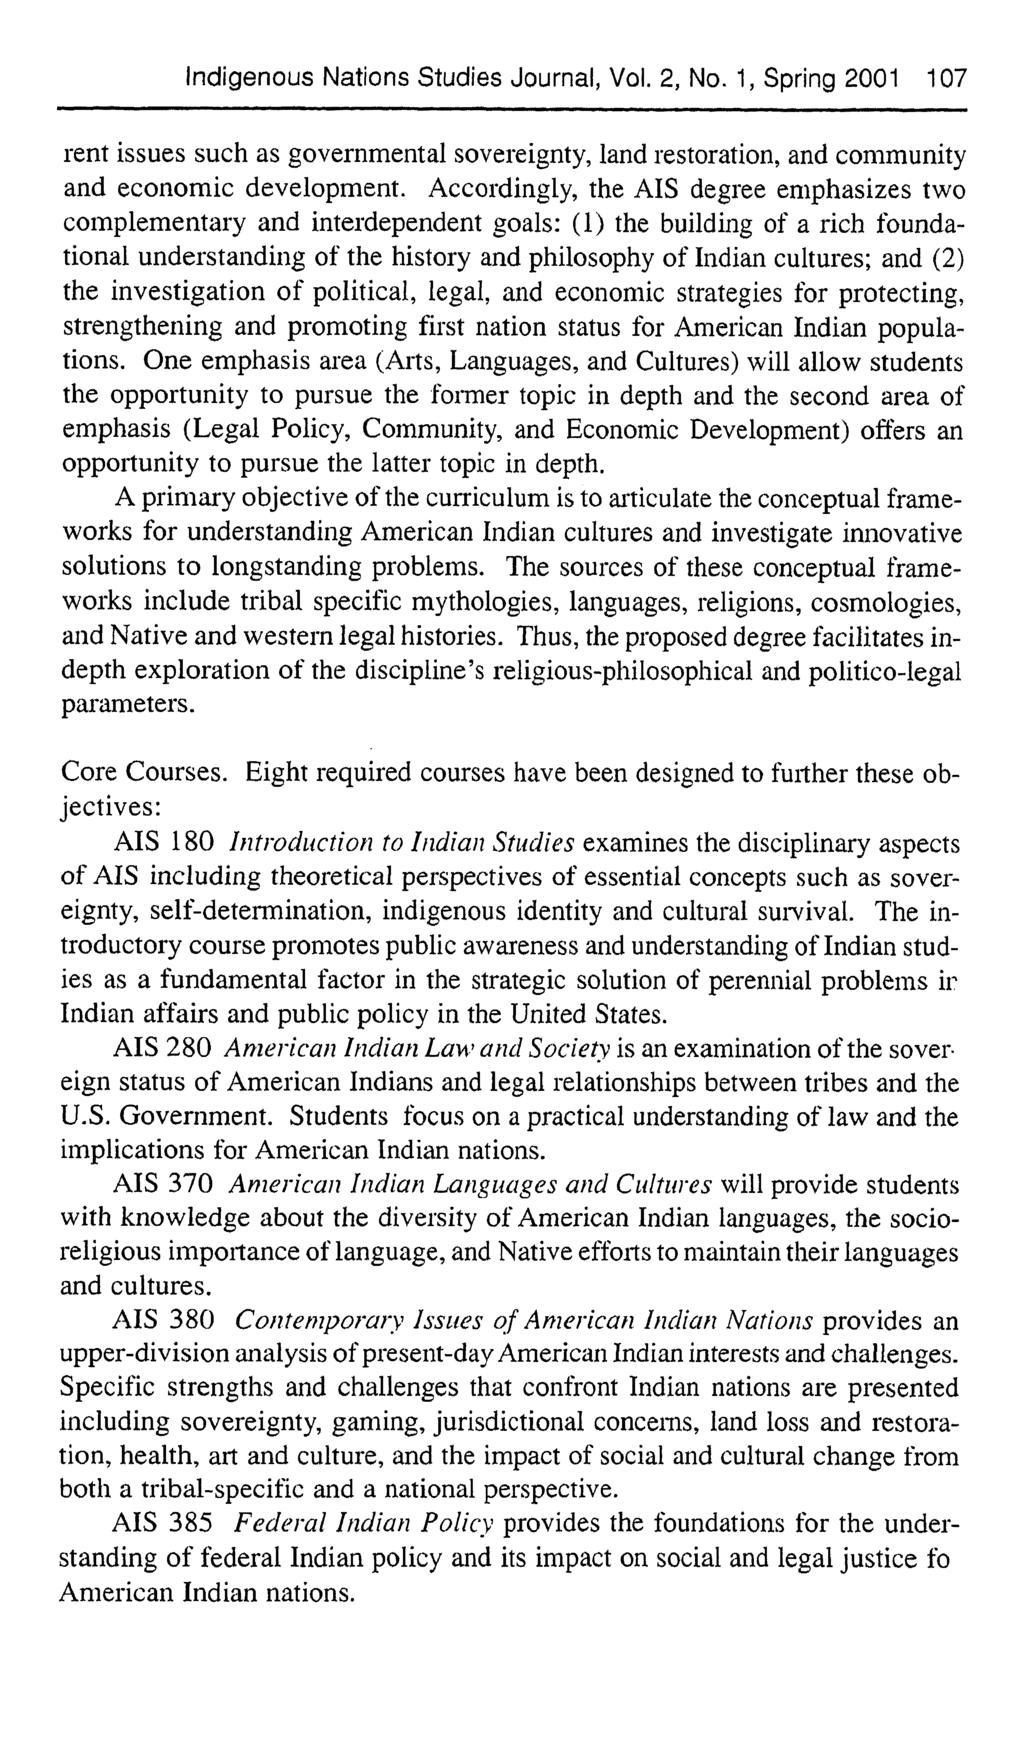 Indigenous Nations Studies Journal, Vol. 2, No. 1, Spring 2001 107 rent issues such as governmental sovereignty, land restoration, and community and economic development.